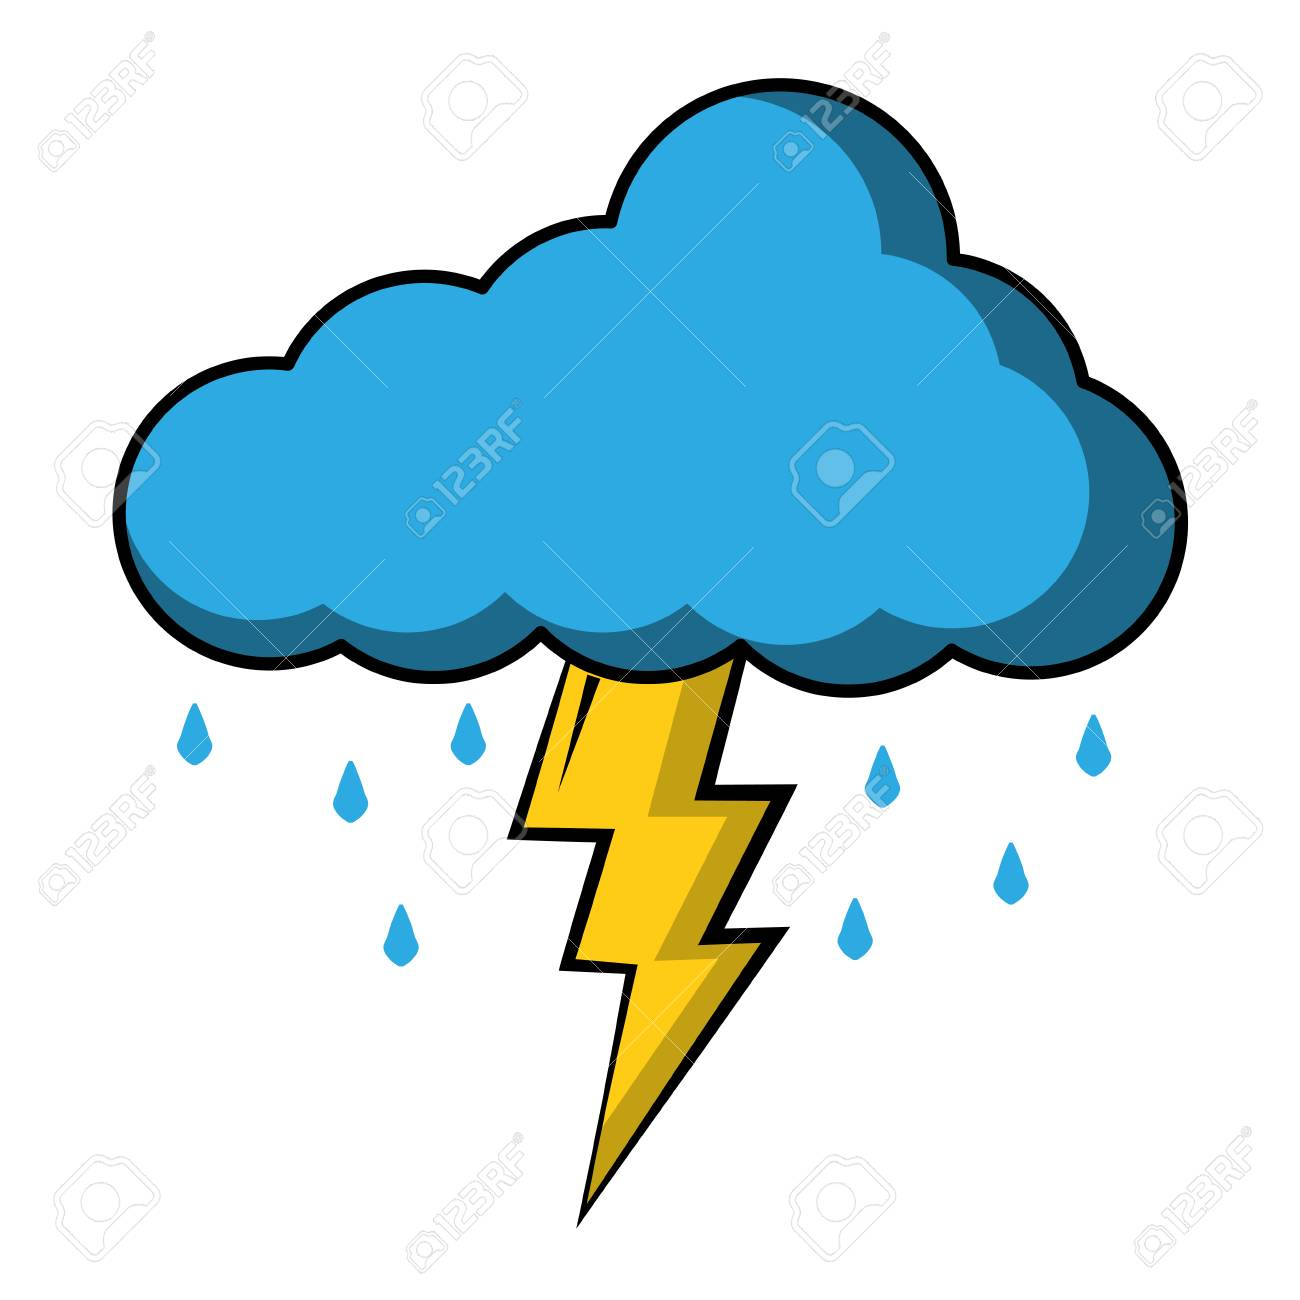 Thunderstorm clipart thunder sound. Free download clip art